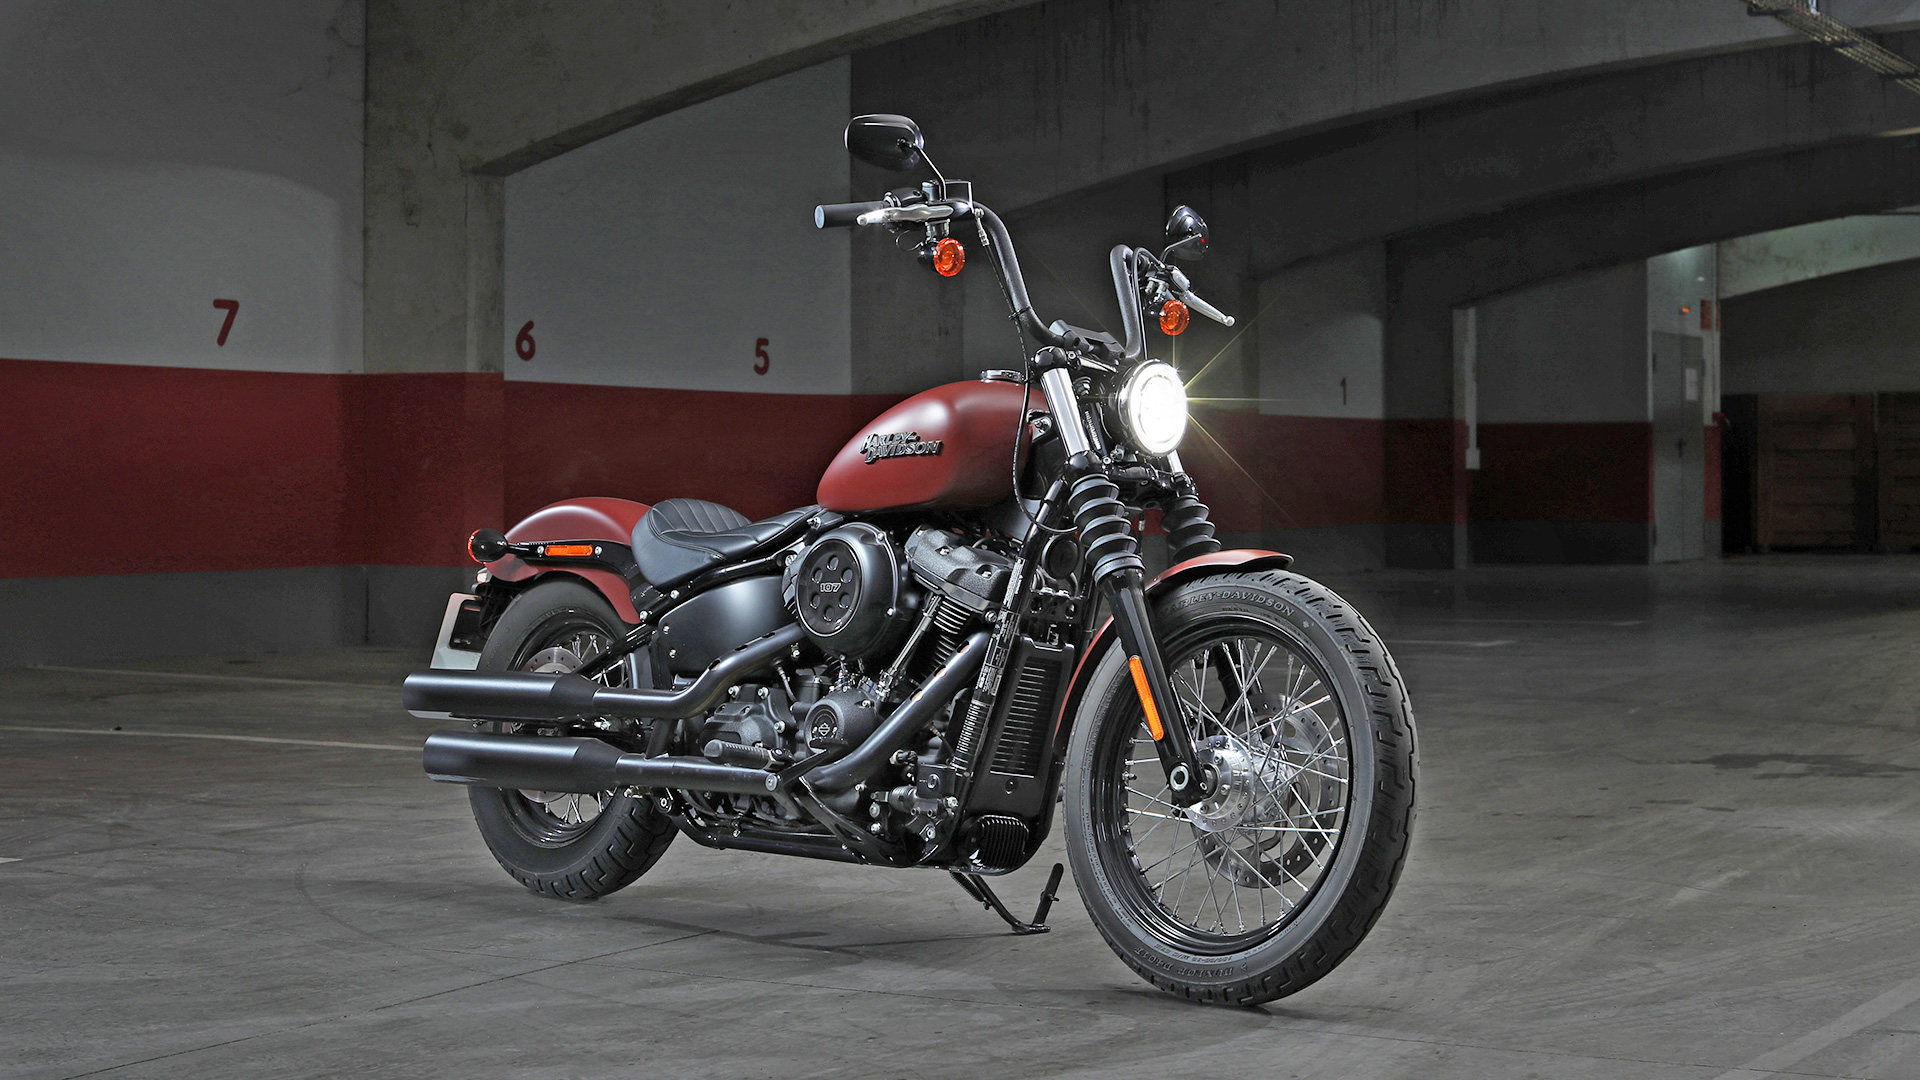 harley davidson street bob 2018 price mileage reviews specification gallery overdrive. Black Bedroom Furniture Sets. Home Design Ideas